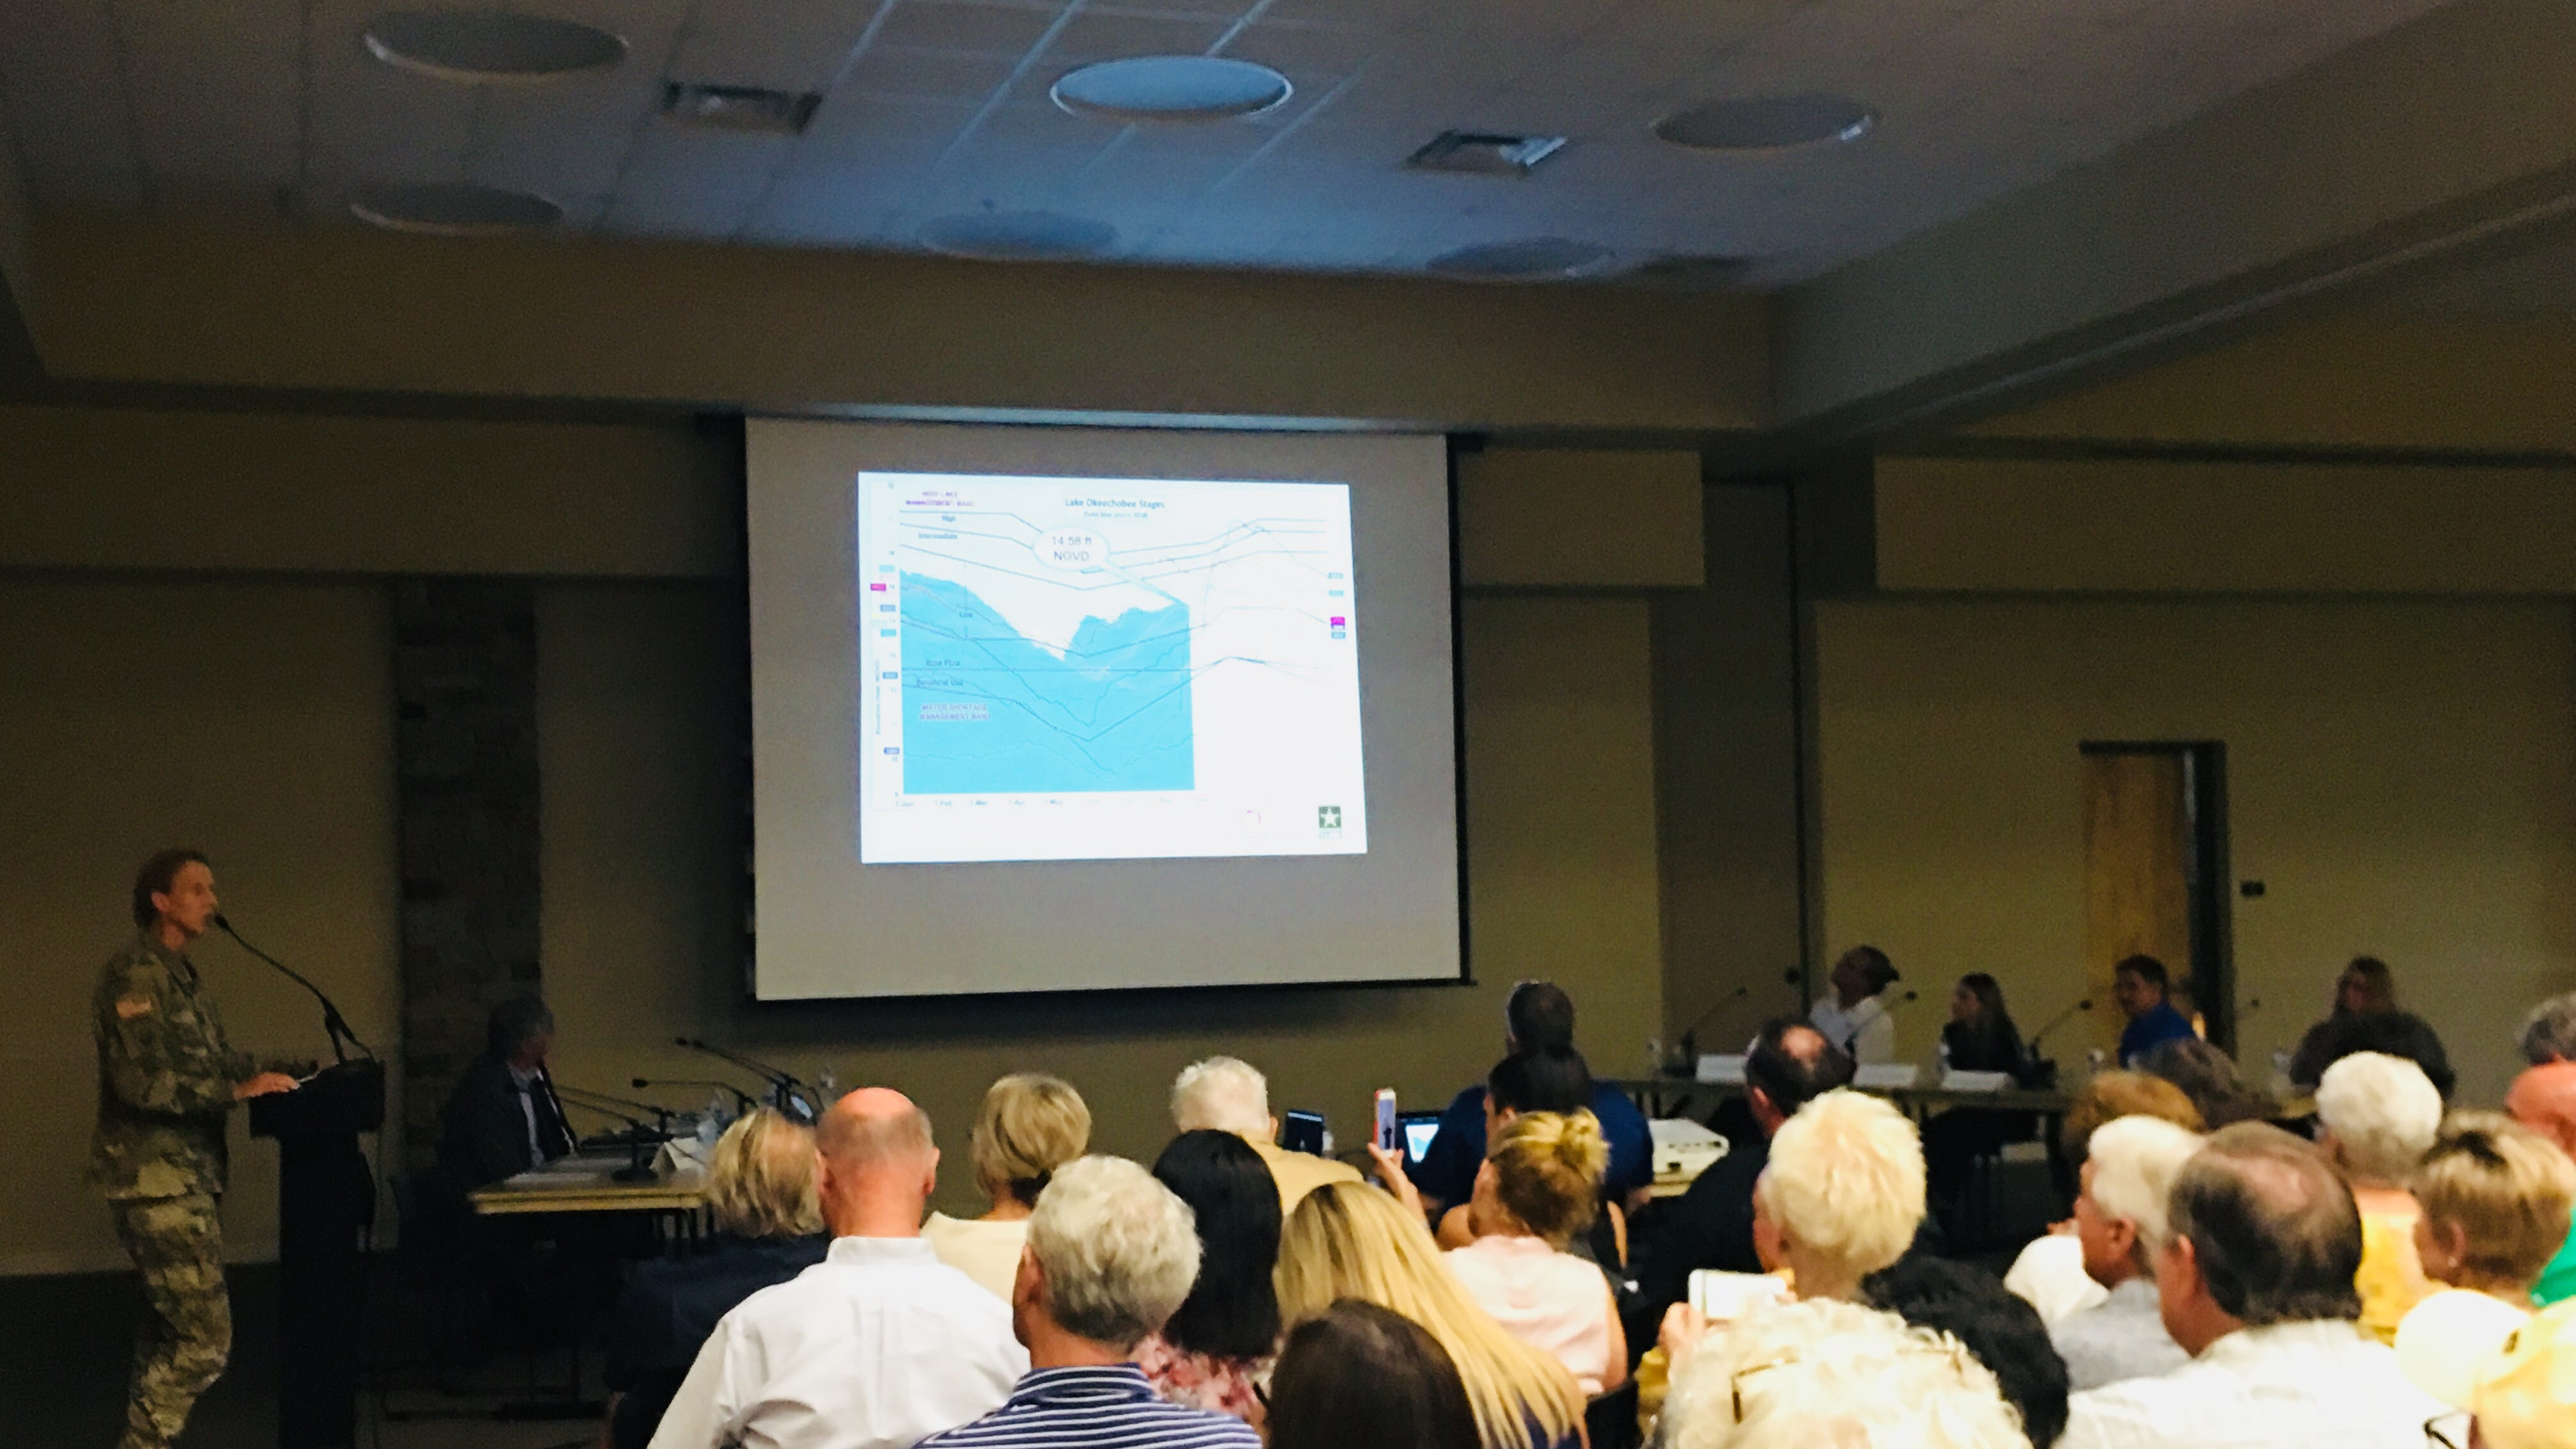 Red tide forum in Collier County: Scientists try to answer residents' questions